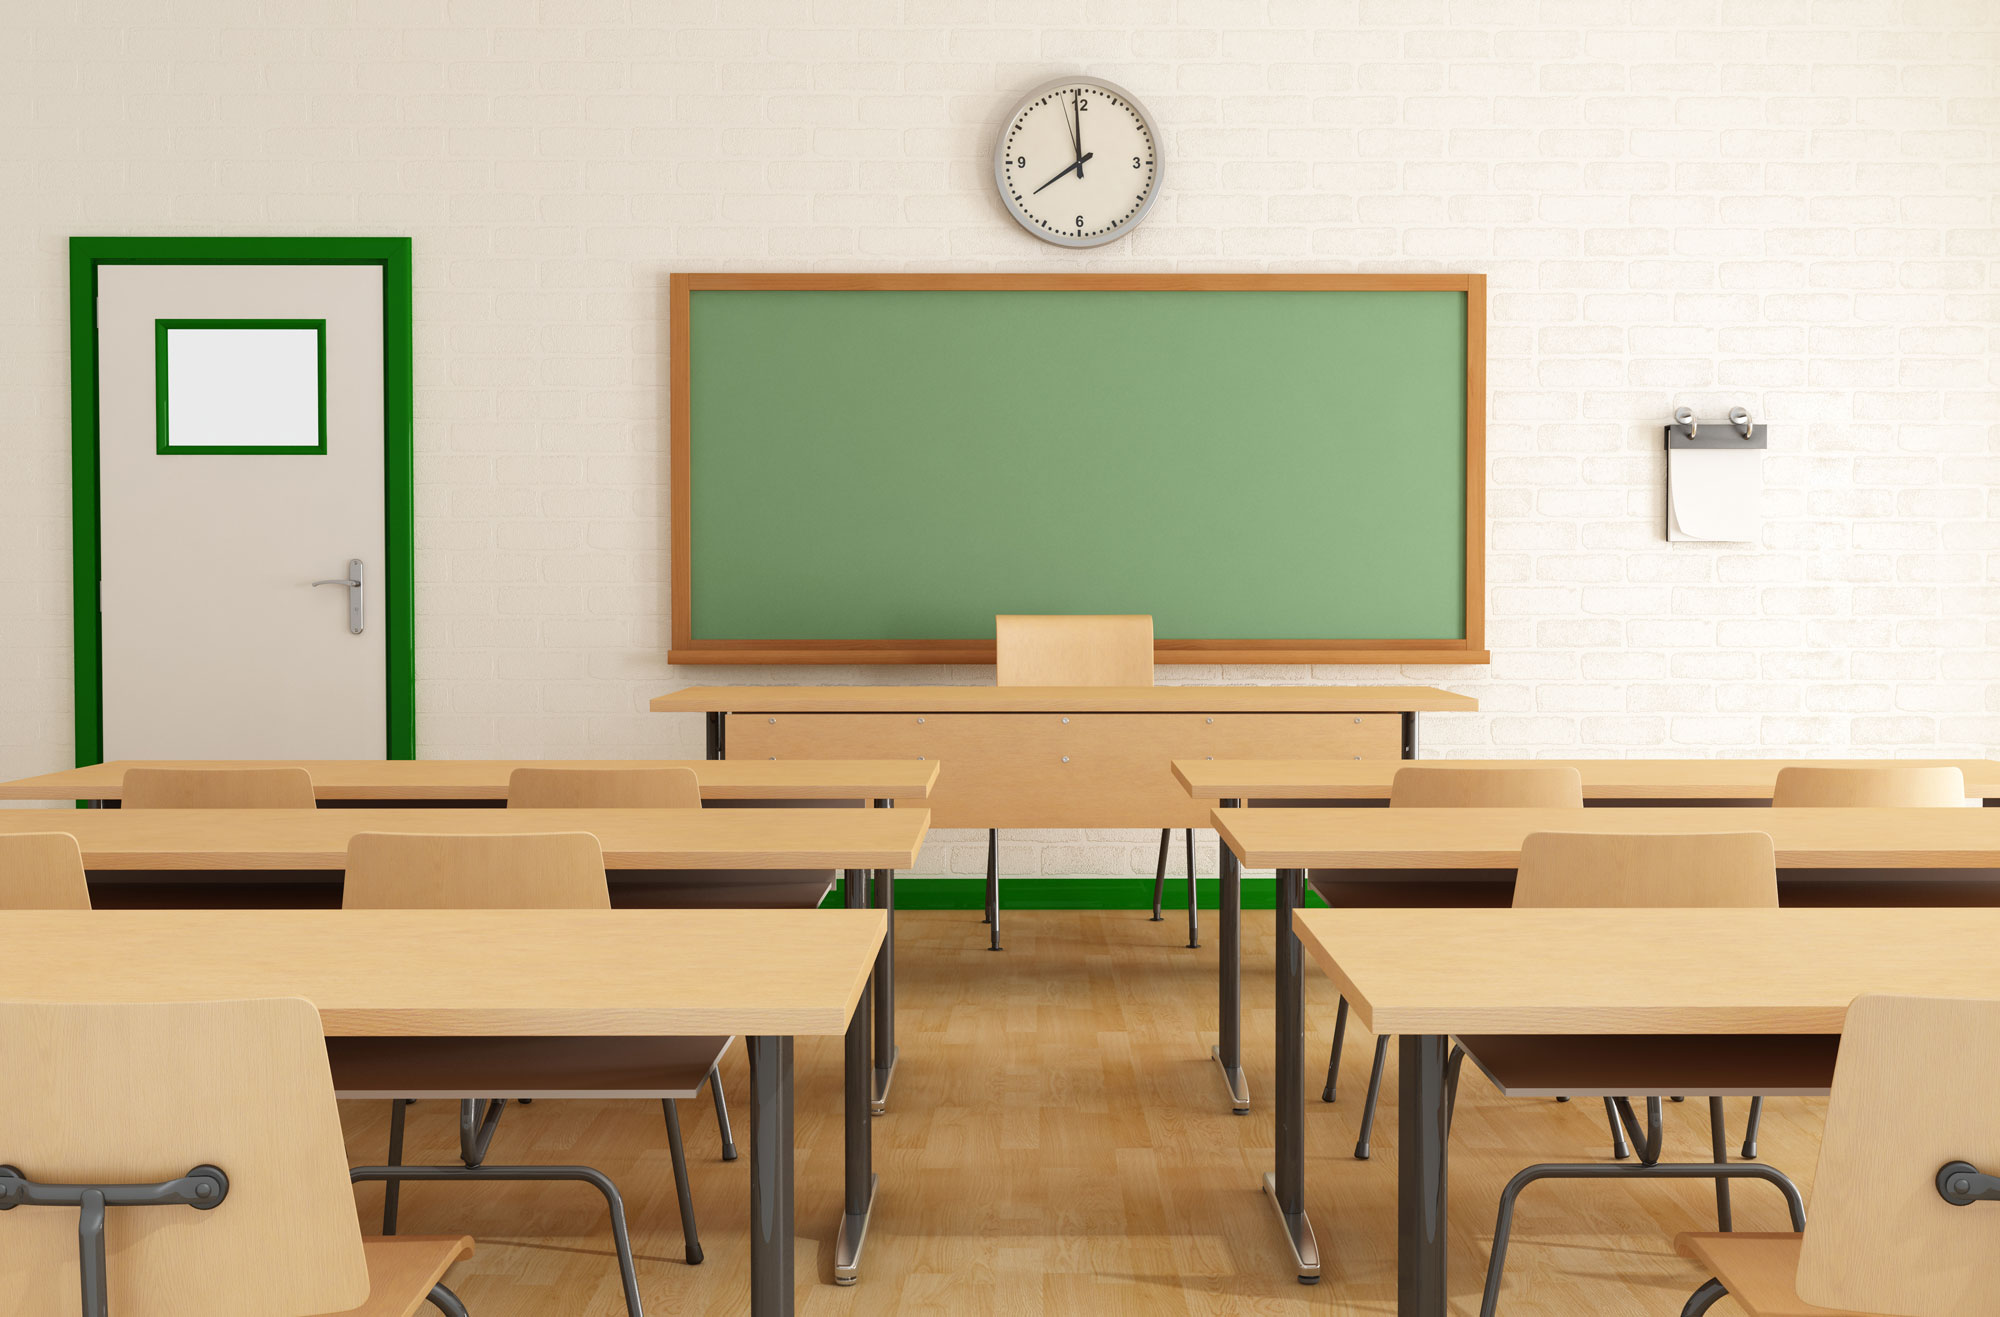 classroom with empty wooden desks and green chalkboard